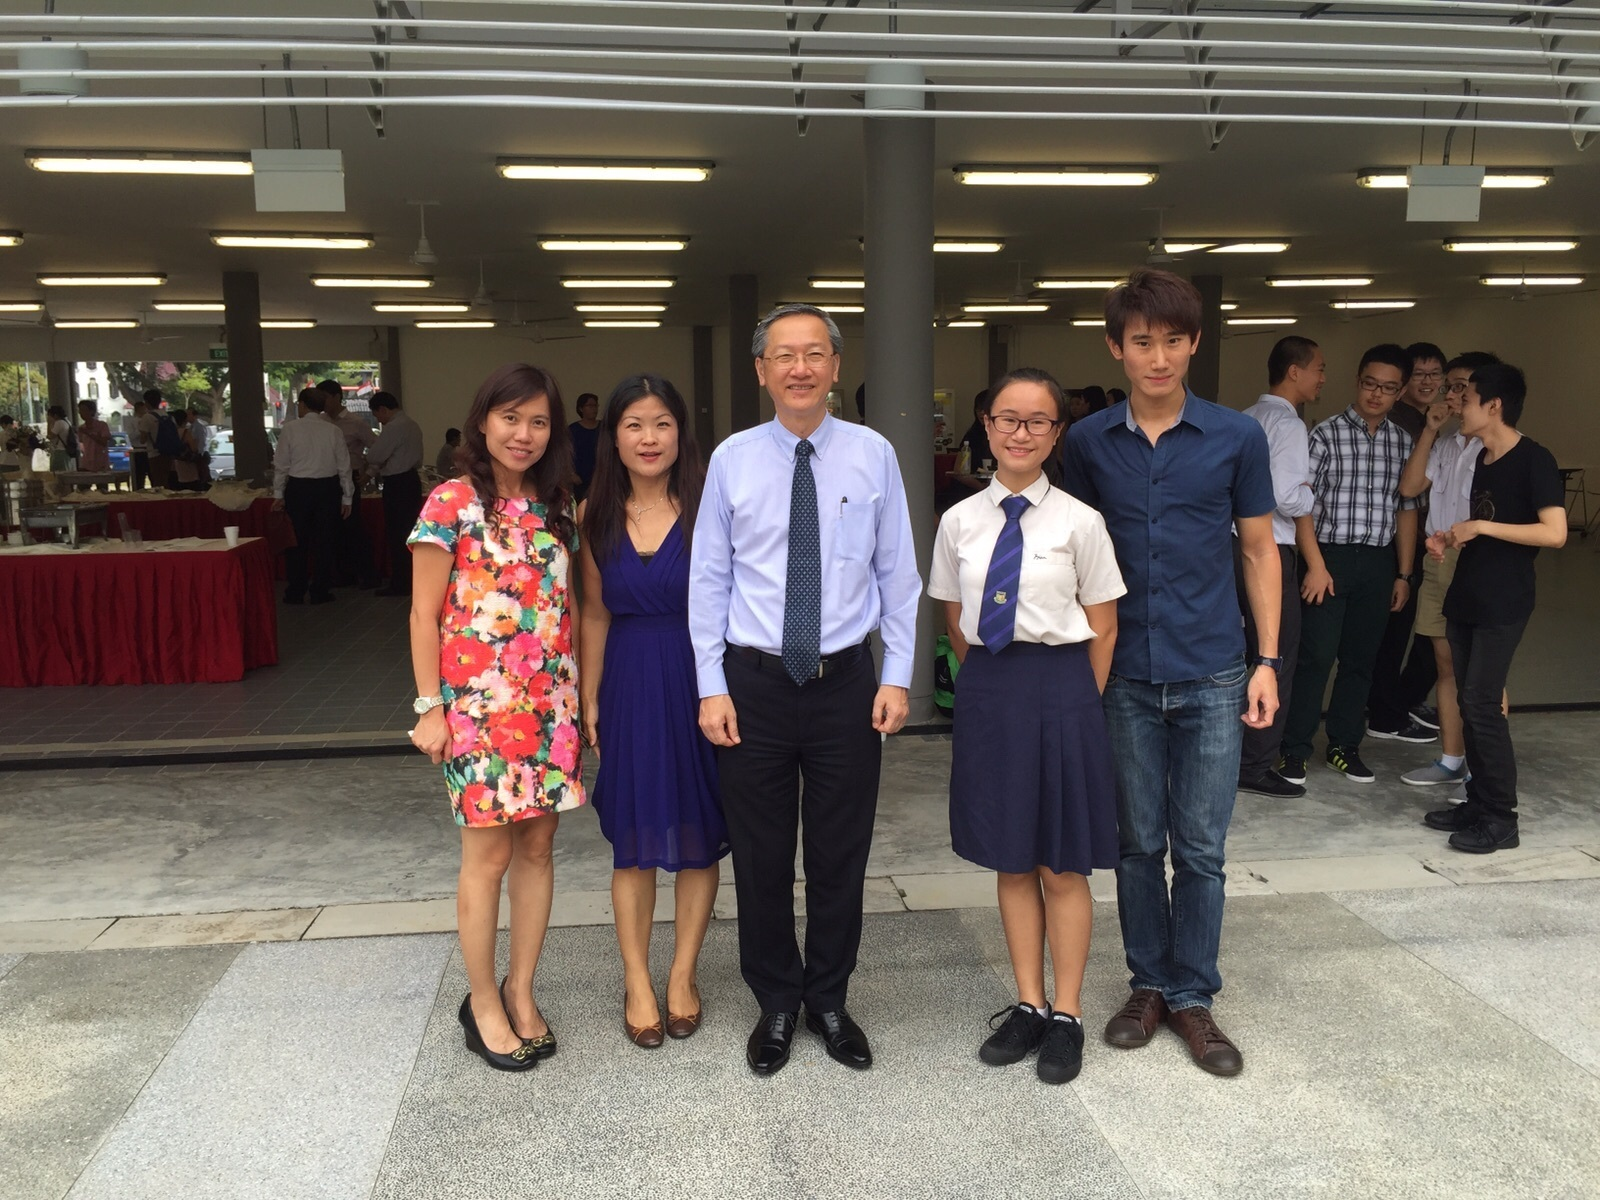 chinese essay writing competition singapore Mandarin monday: my contribution to chinese essay competition posted on may 21, 2012 by support every semester sun yat-sen university has an essay competition for.